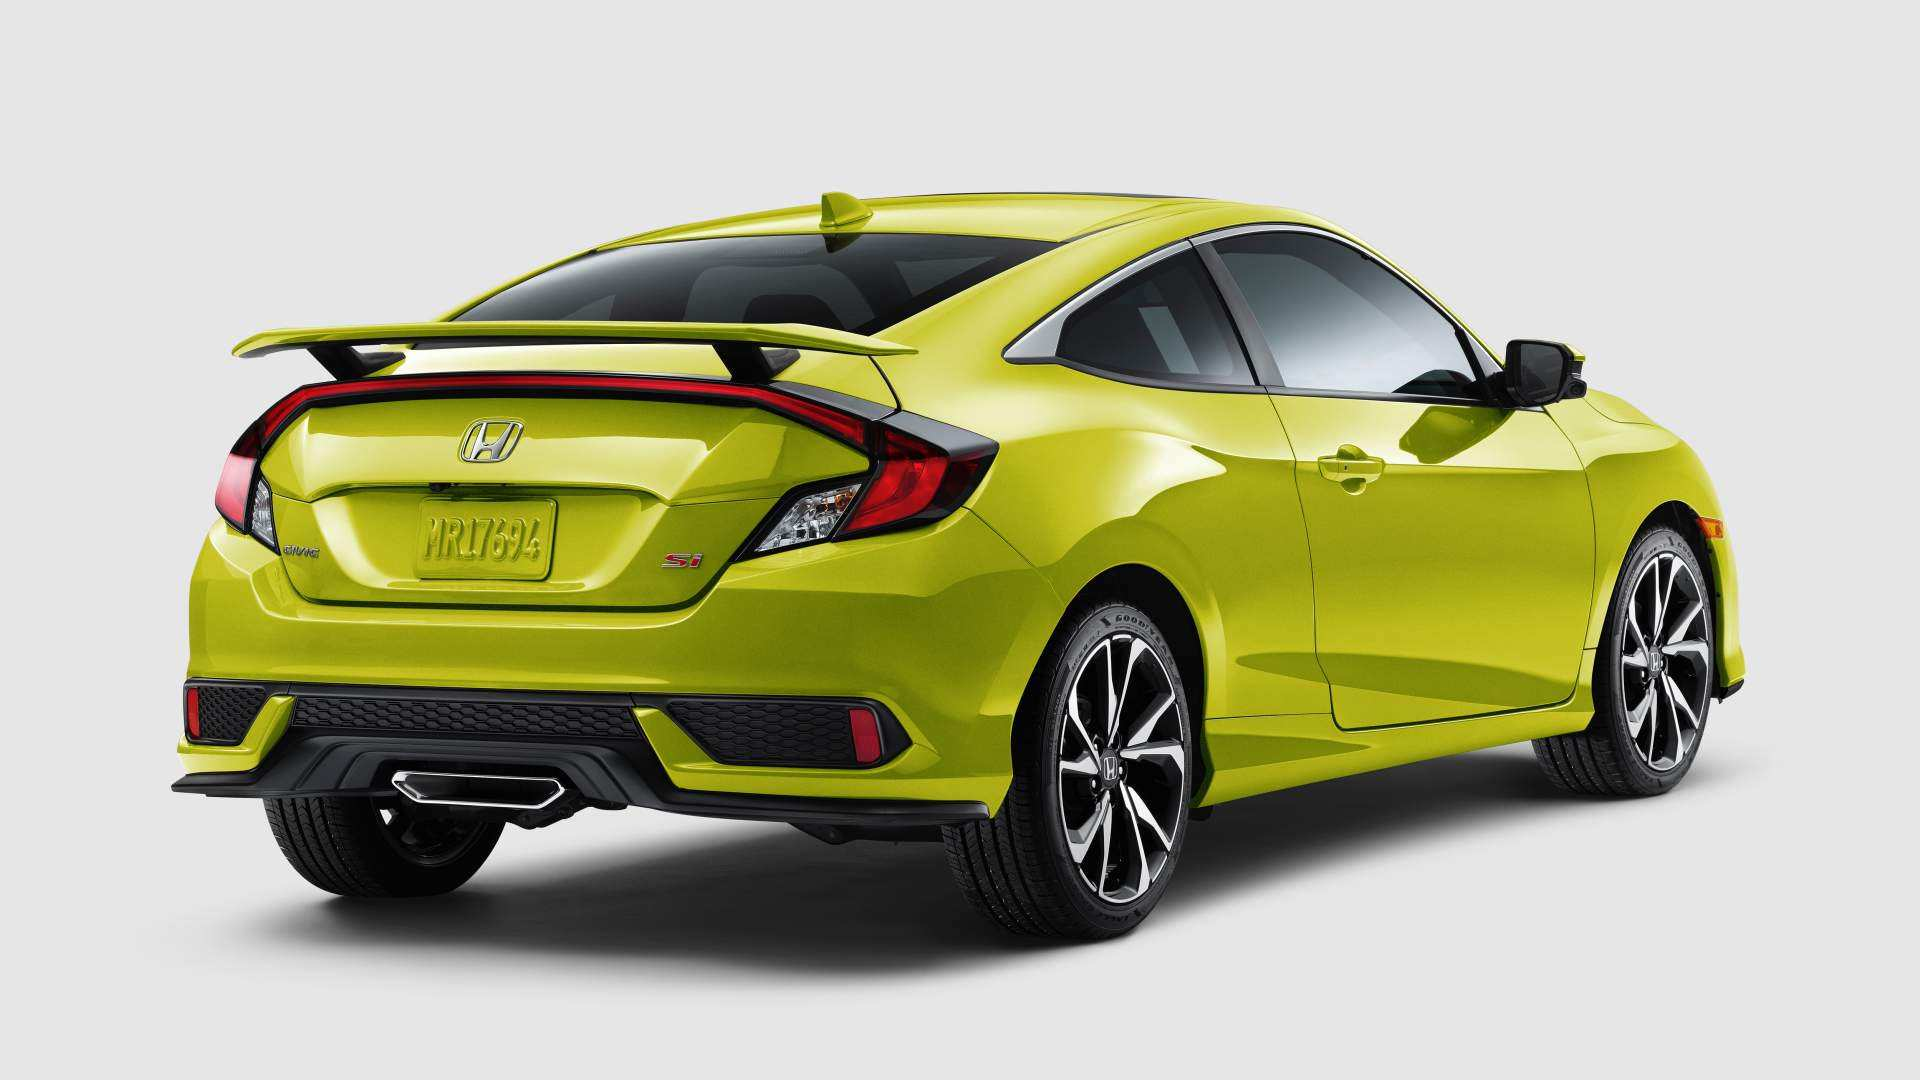 92 New 2019 Honda Civic Si Sedan Style